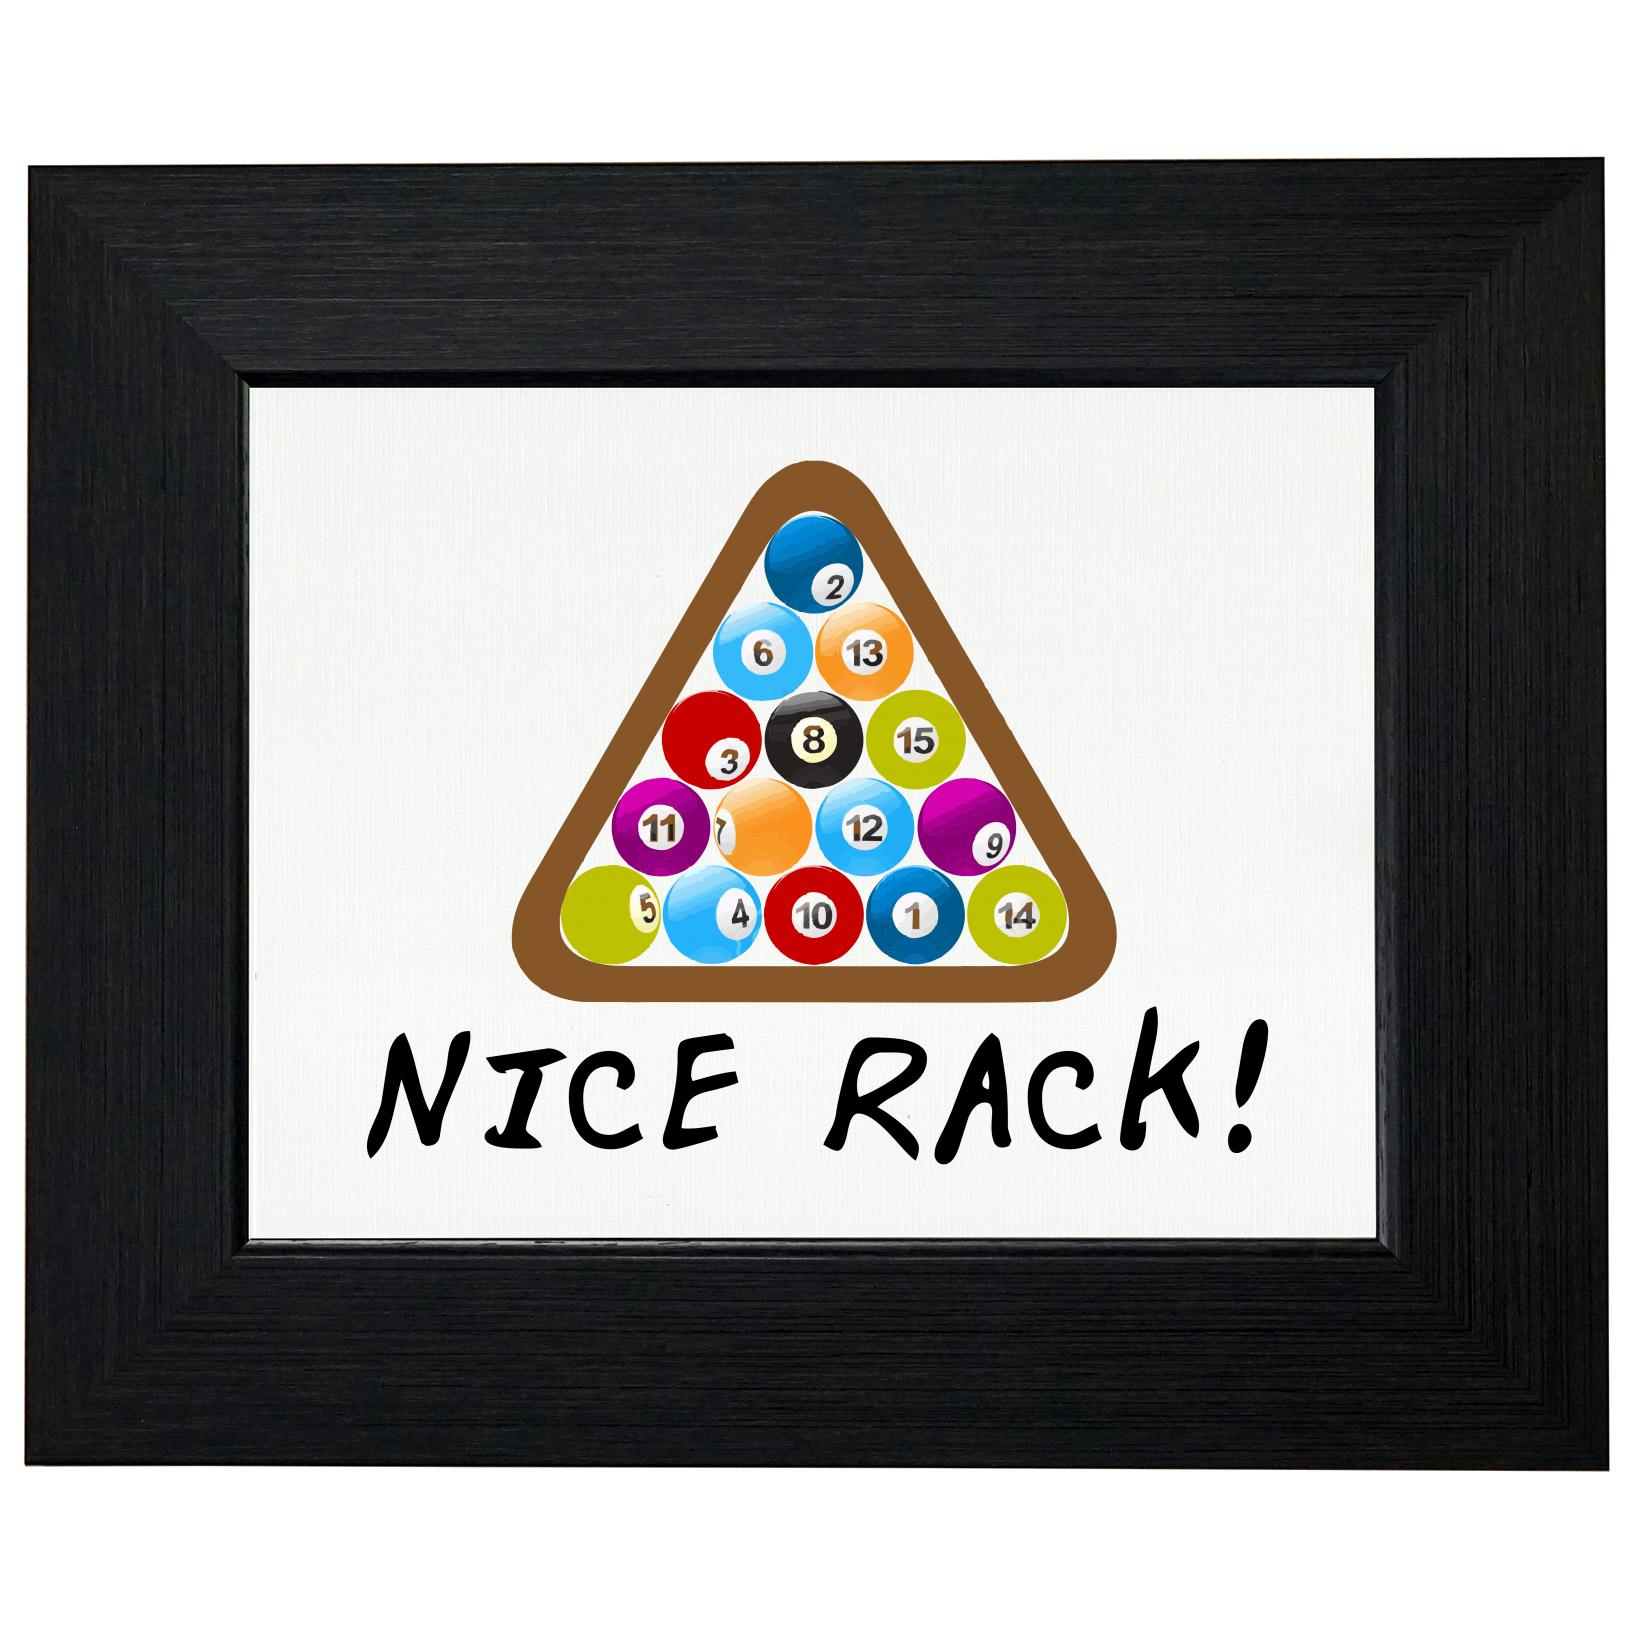 Nice Rack - Classic Pool / Billiards Colorful Graphic Framed Print Poster Wall or Desk Mount Options